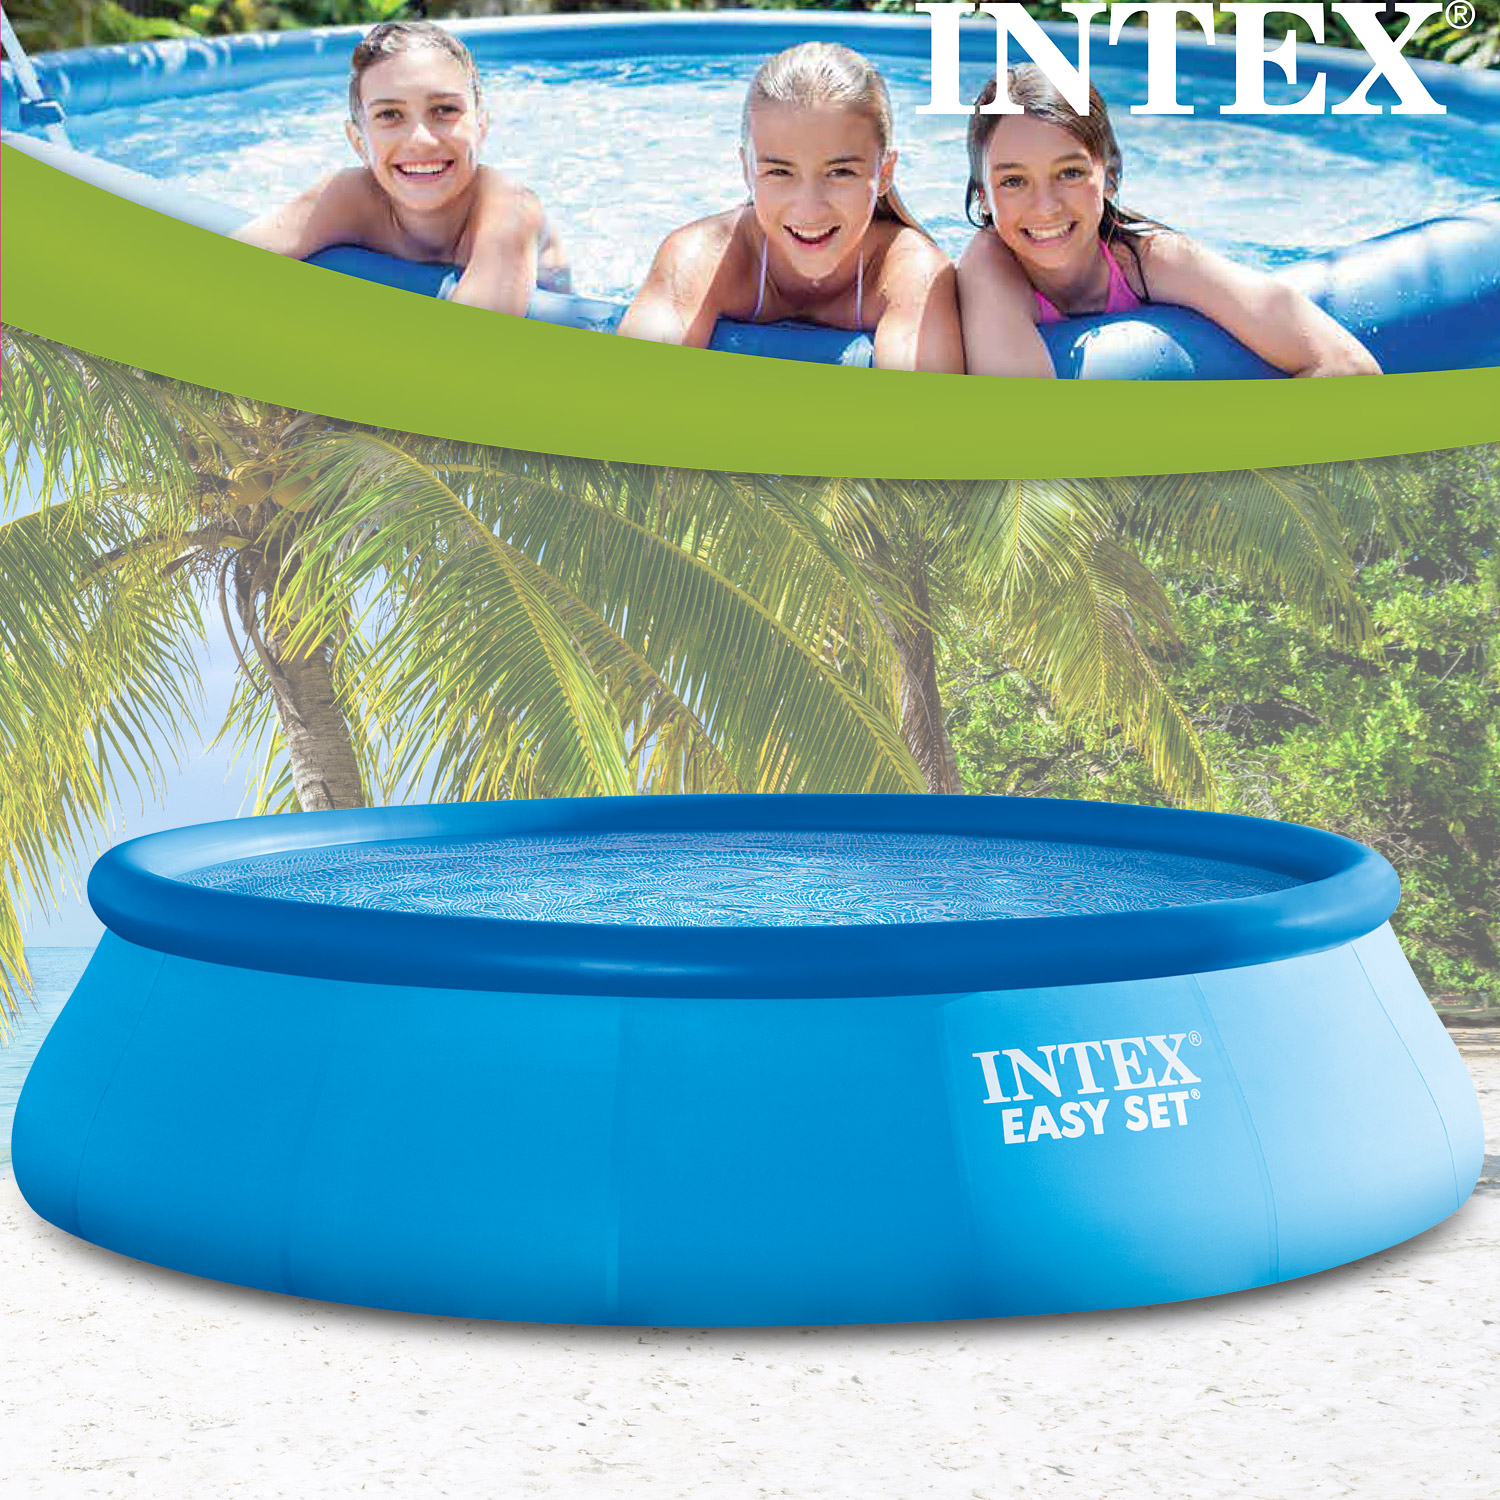 Intex Pool Ohne Filteranlage Intex Swimming Pool Easy 488x107 Cm Ohne Zubehör